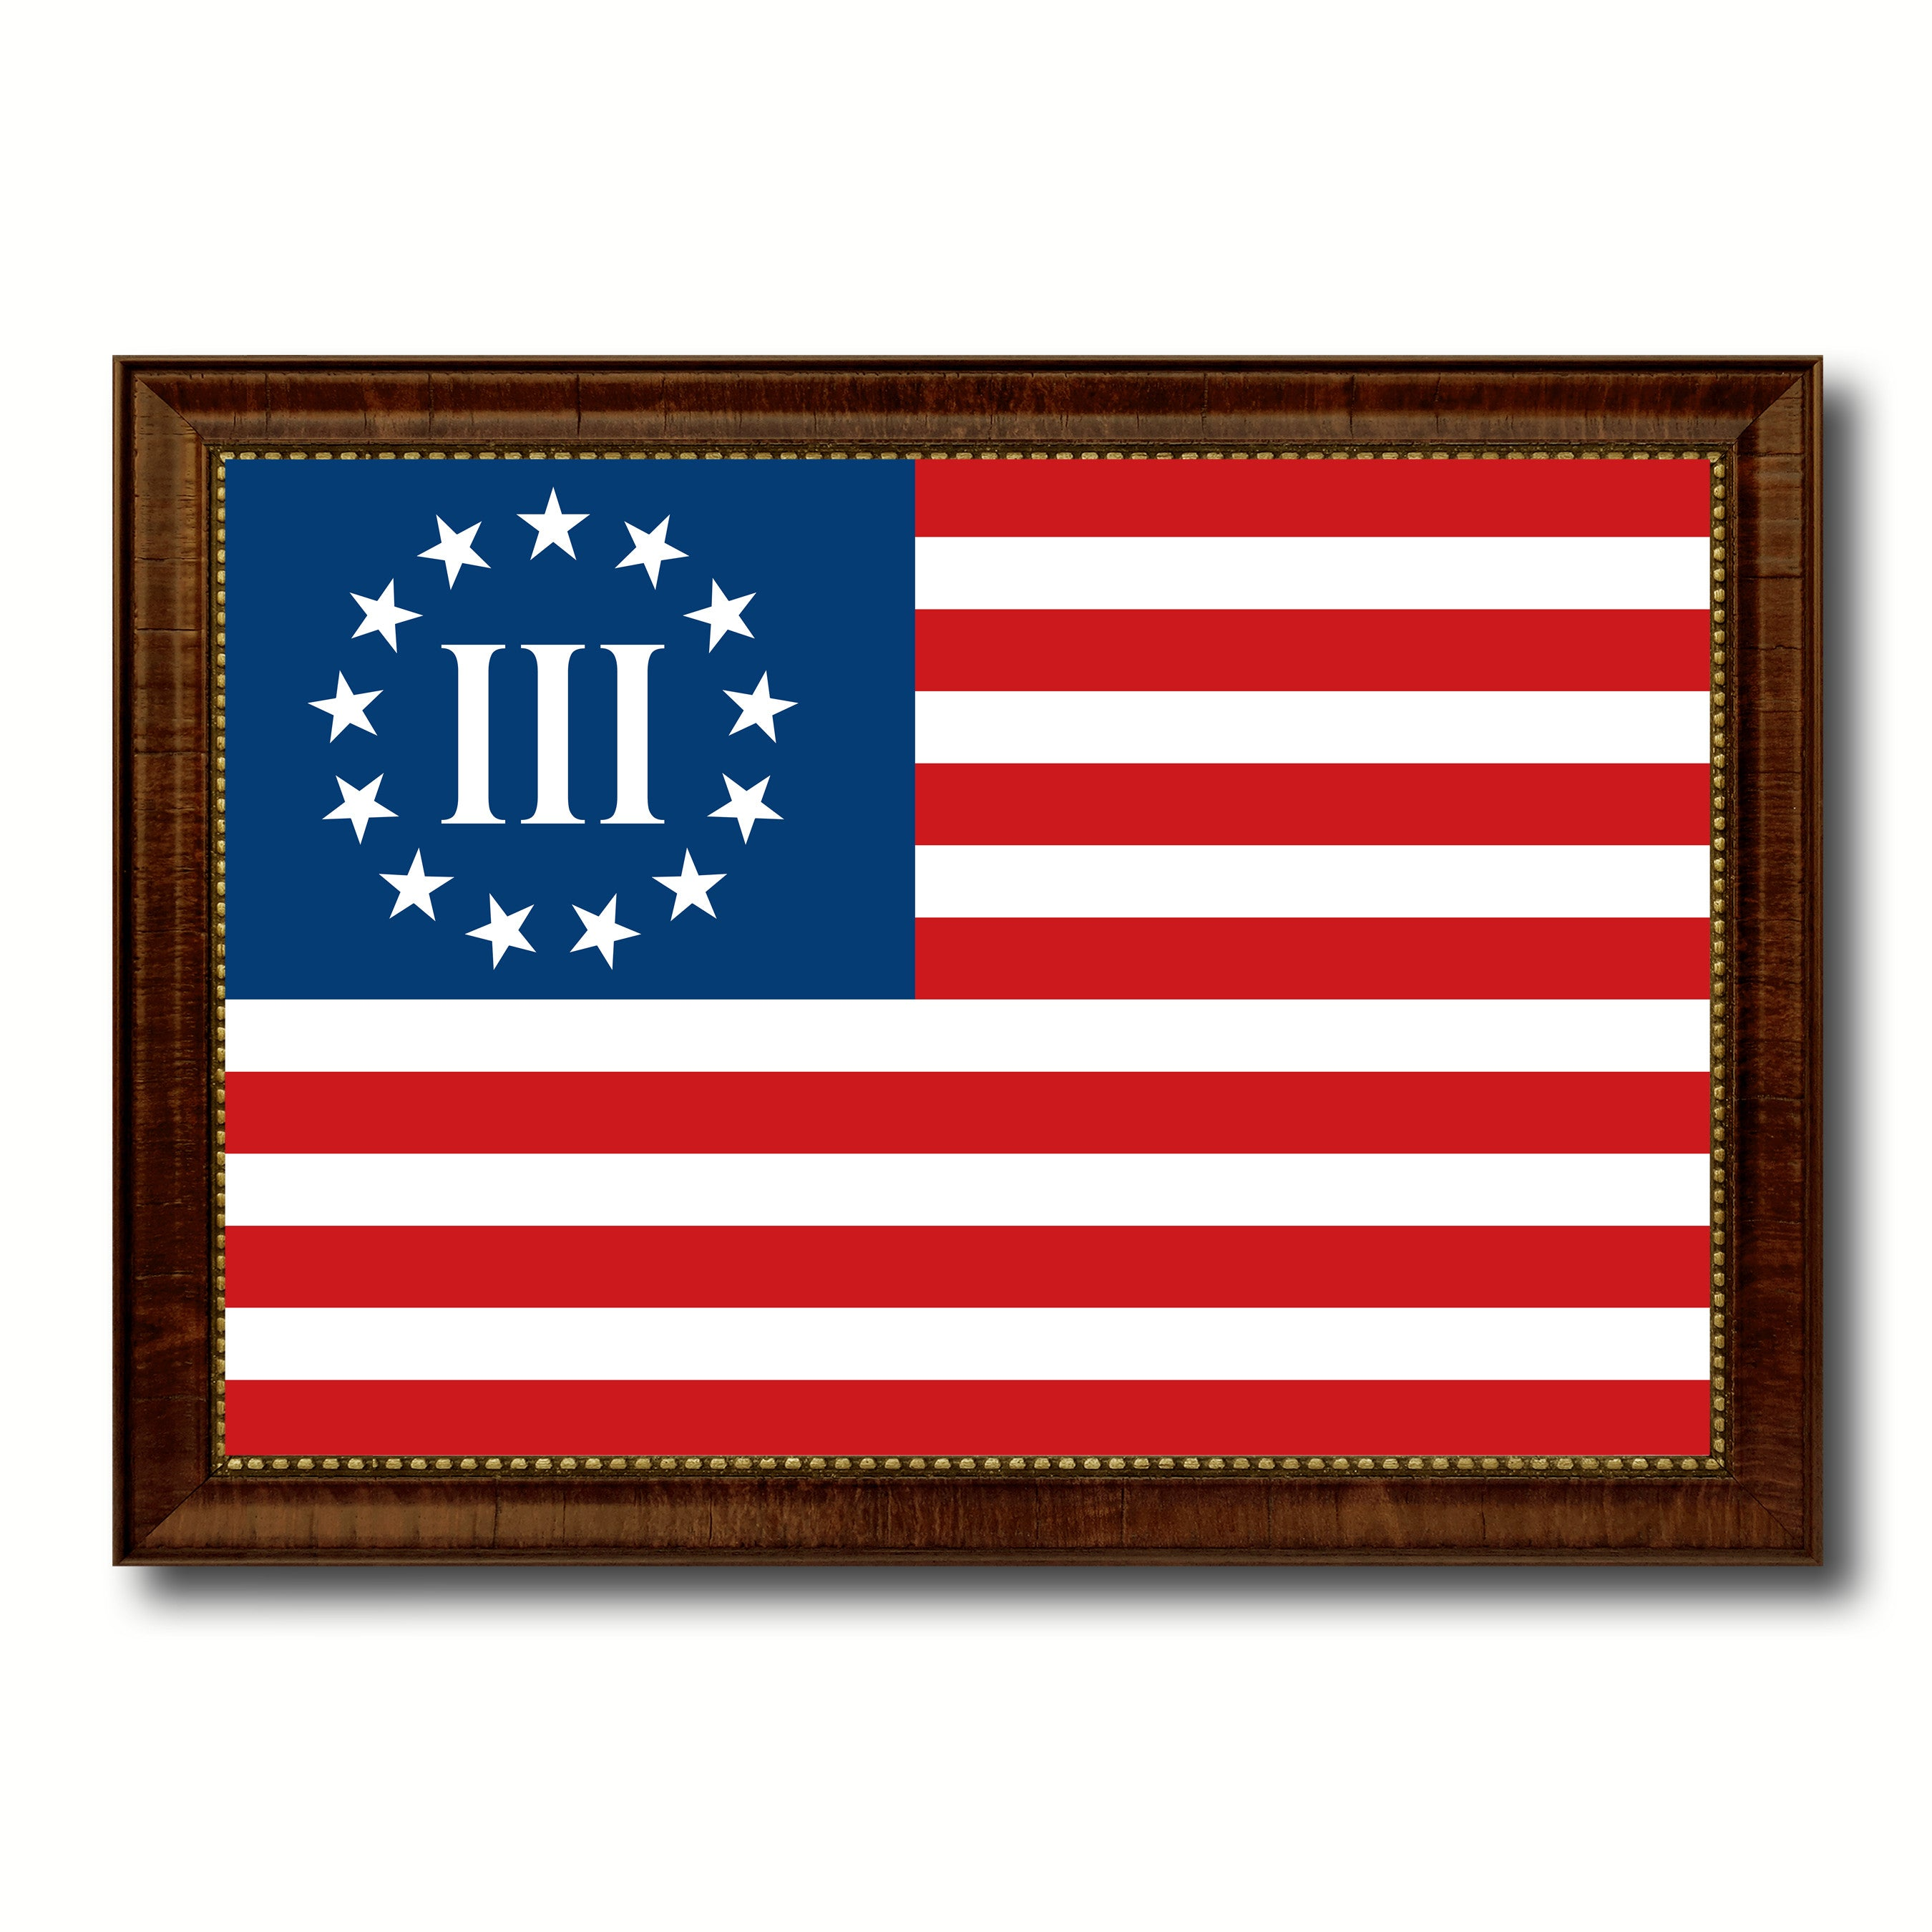 3 Percent Betsy Ross Nyberg Battle III Revolutionary War Military Flag Canvas Print with Brown Picture Frame Home Decor Wall Art Gift Ideas